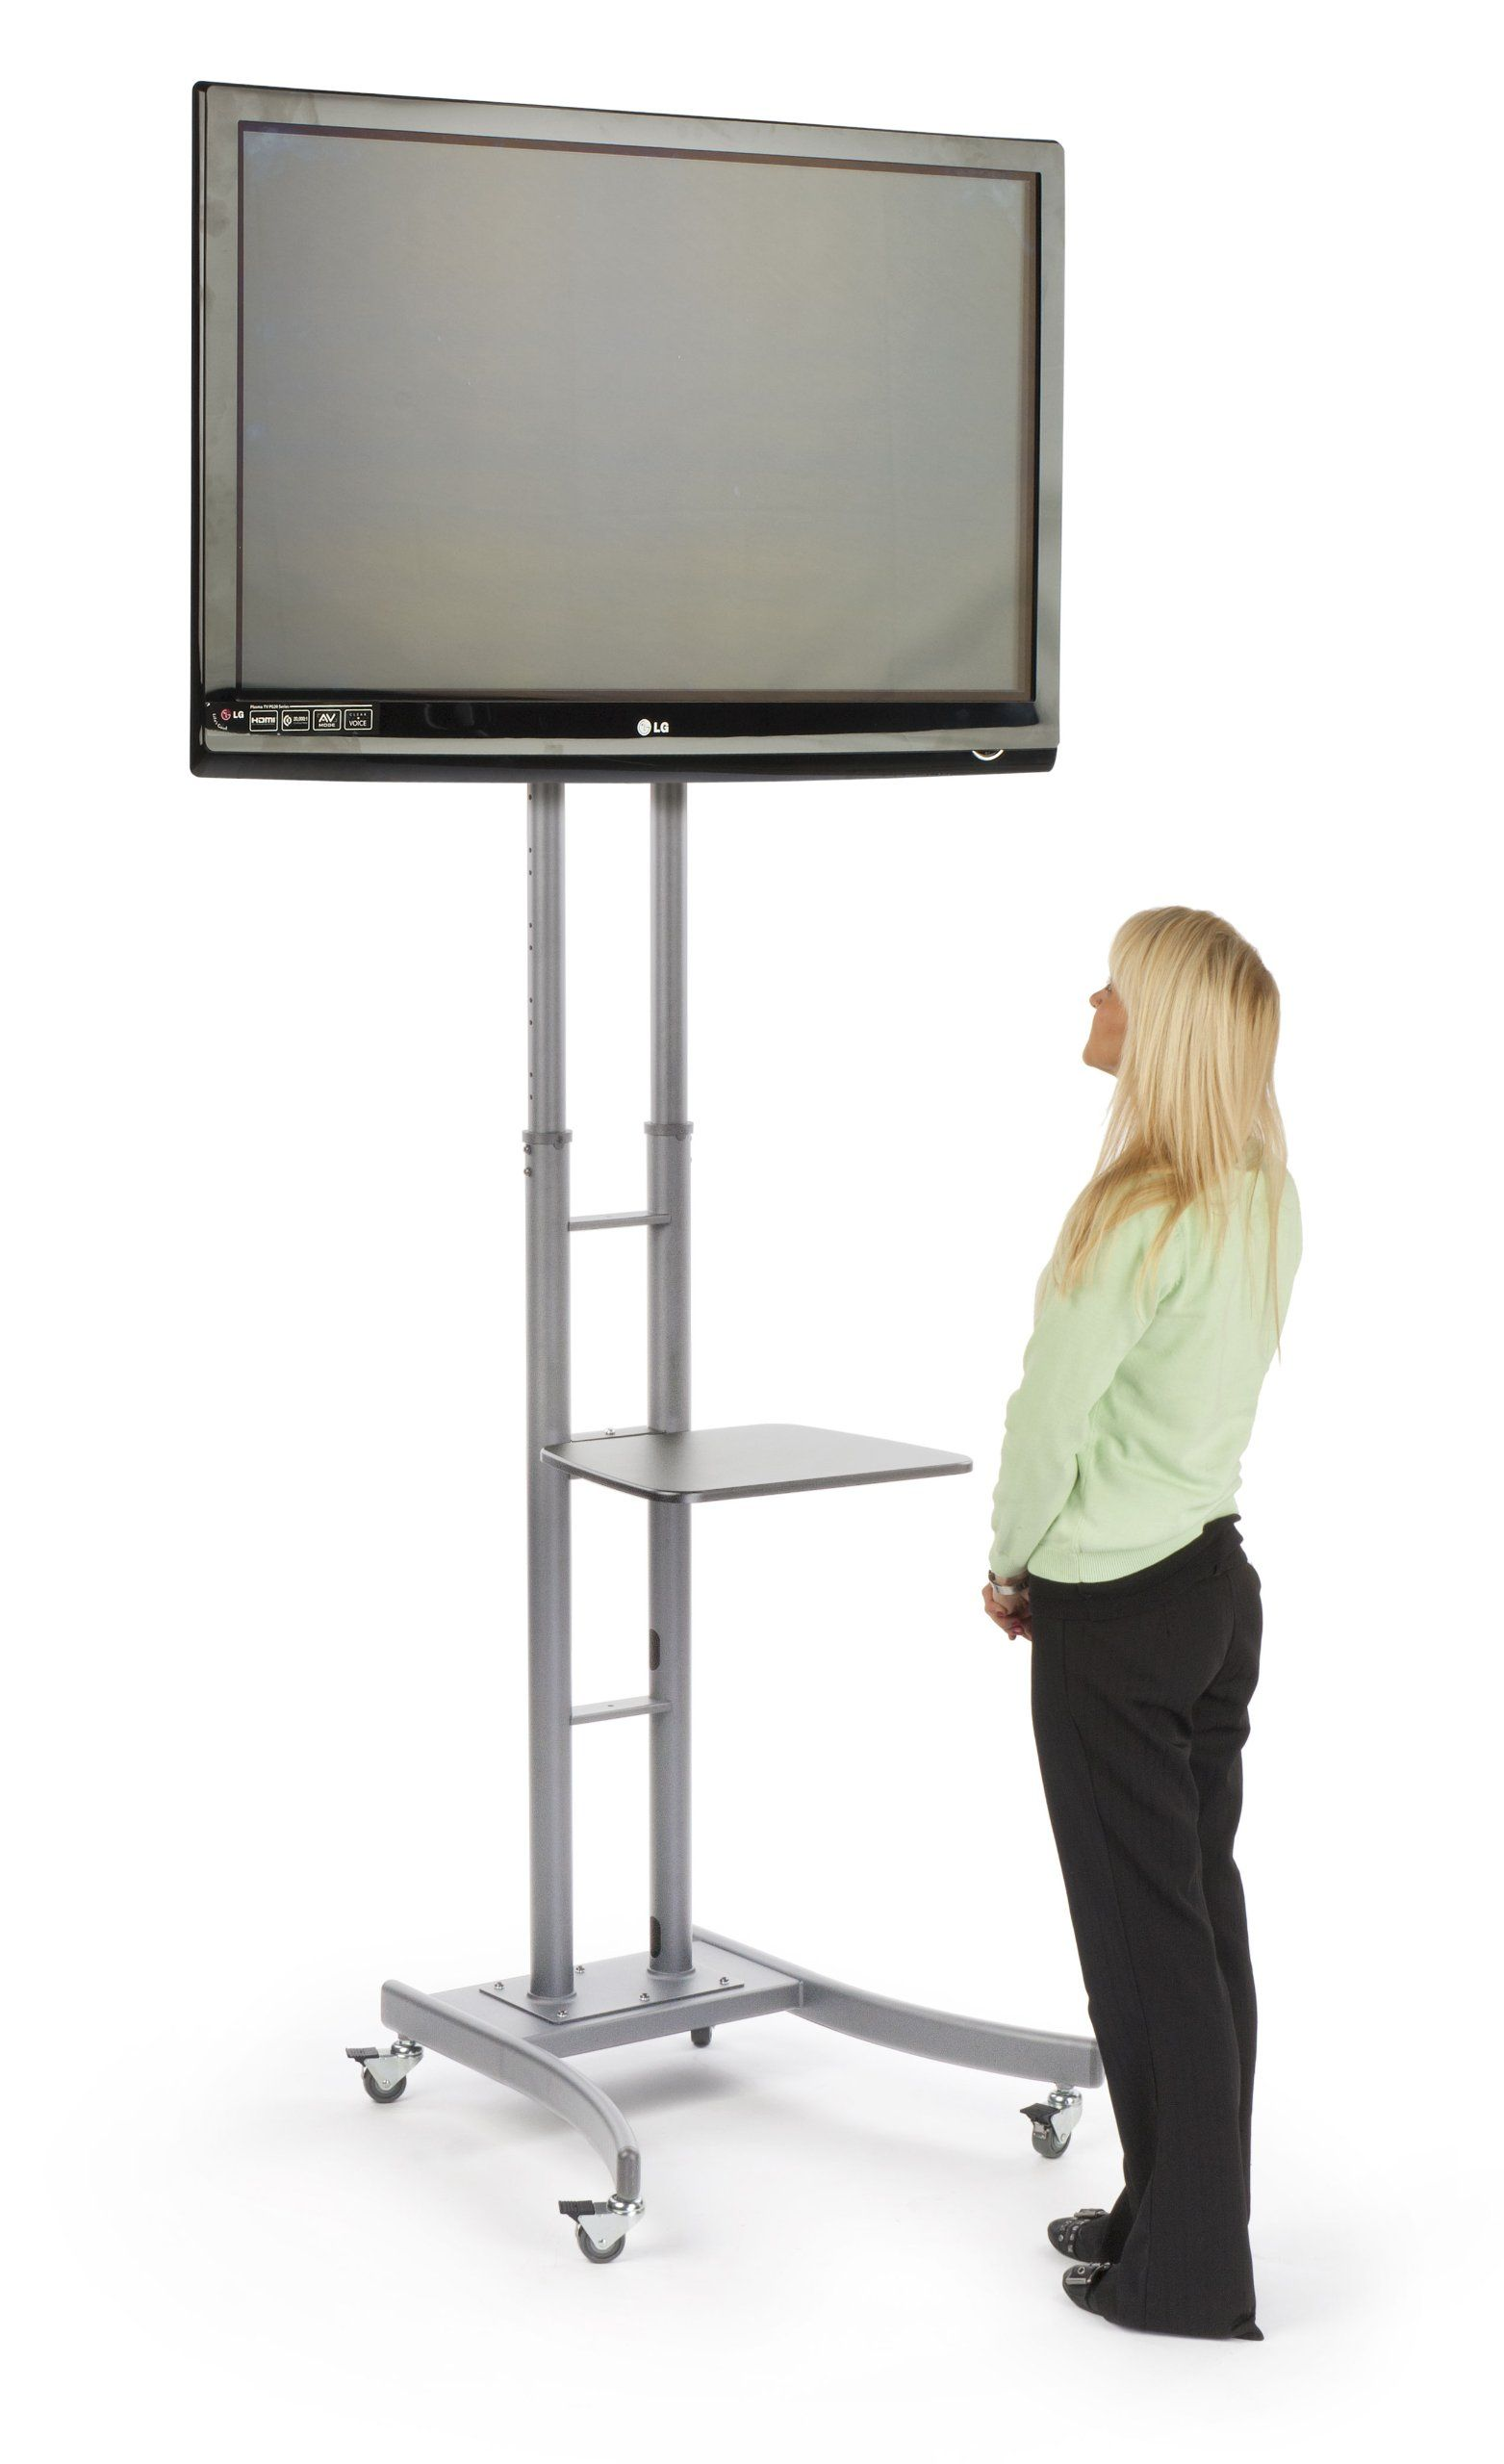 Amazon.com: Portable TV Stand With Wheels For LCD, Plasma Or LED TVs